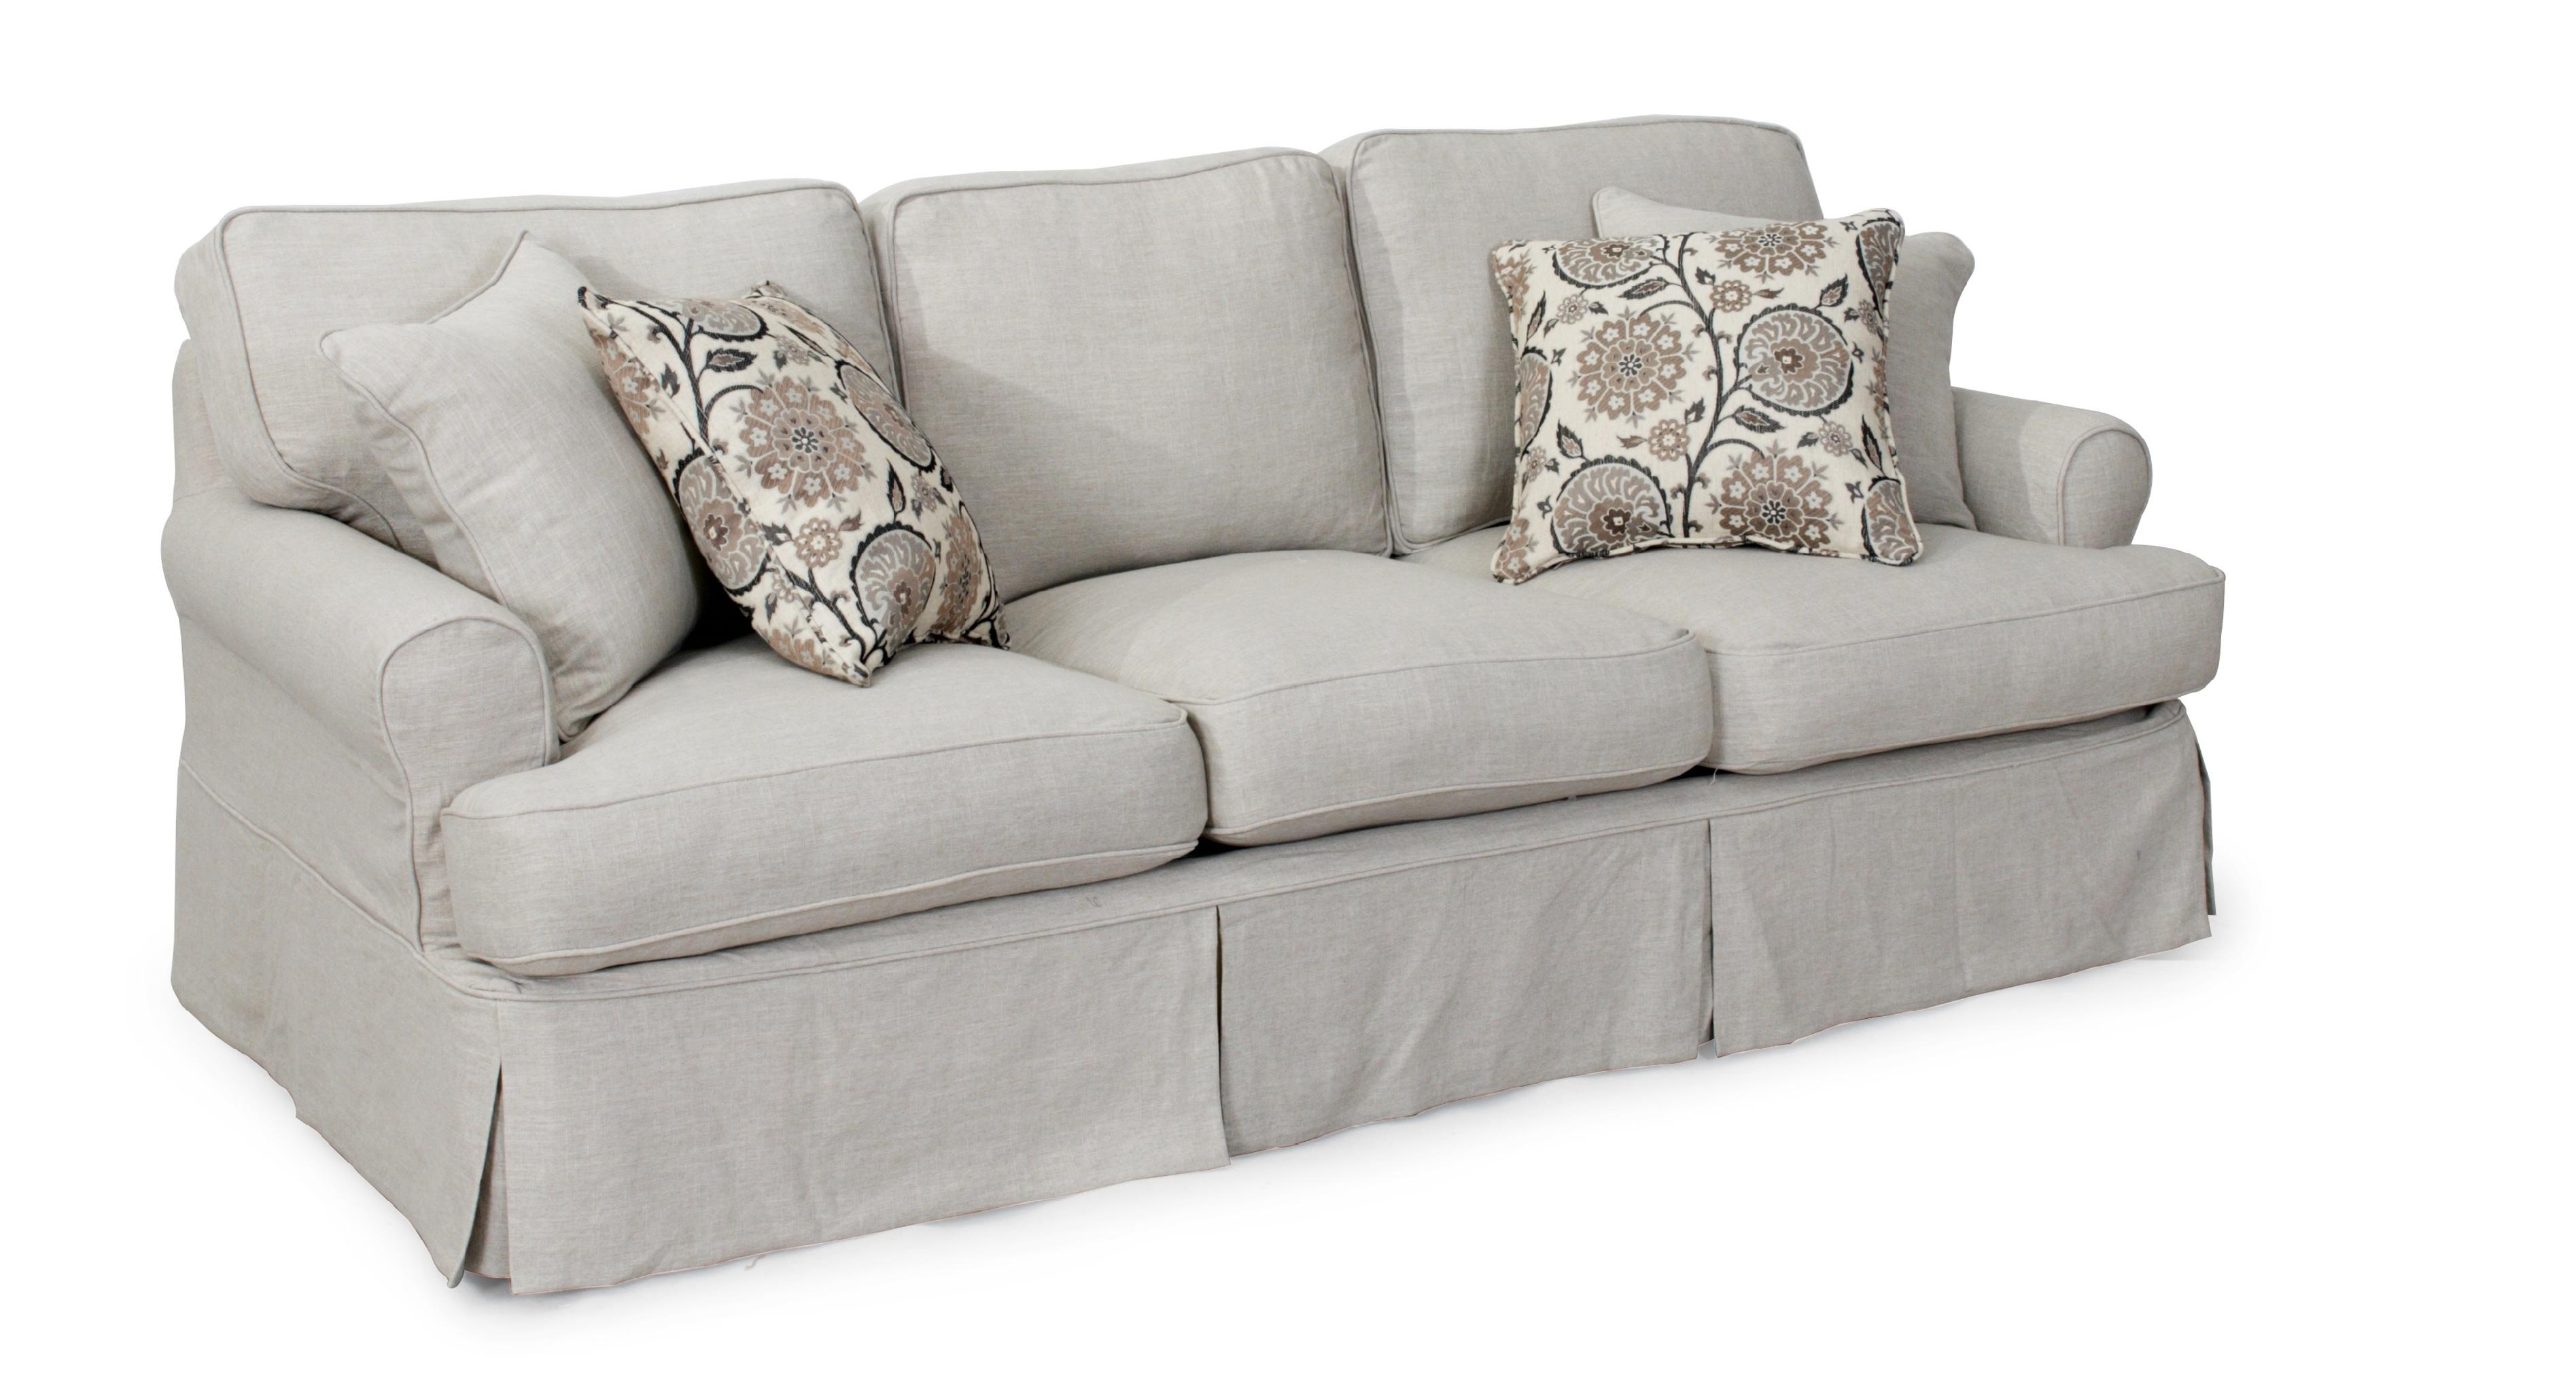 Sofas : Wonderful Ready Made Sofa Covers Large Sofa Covers Sofa With Regard To Large Sofa Slipcovers (View 16 of 23)